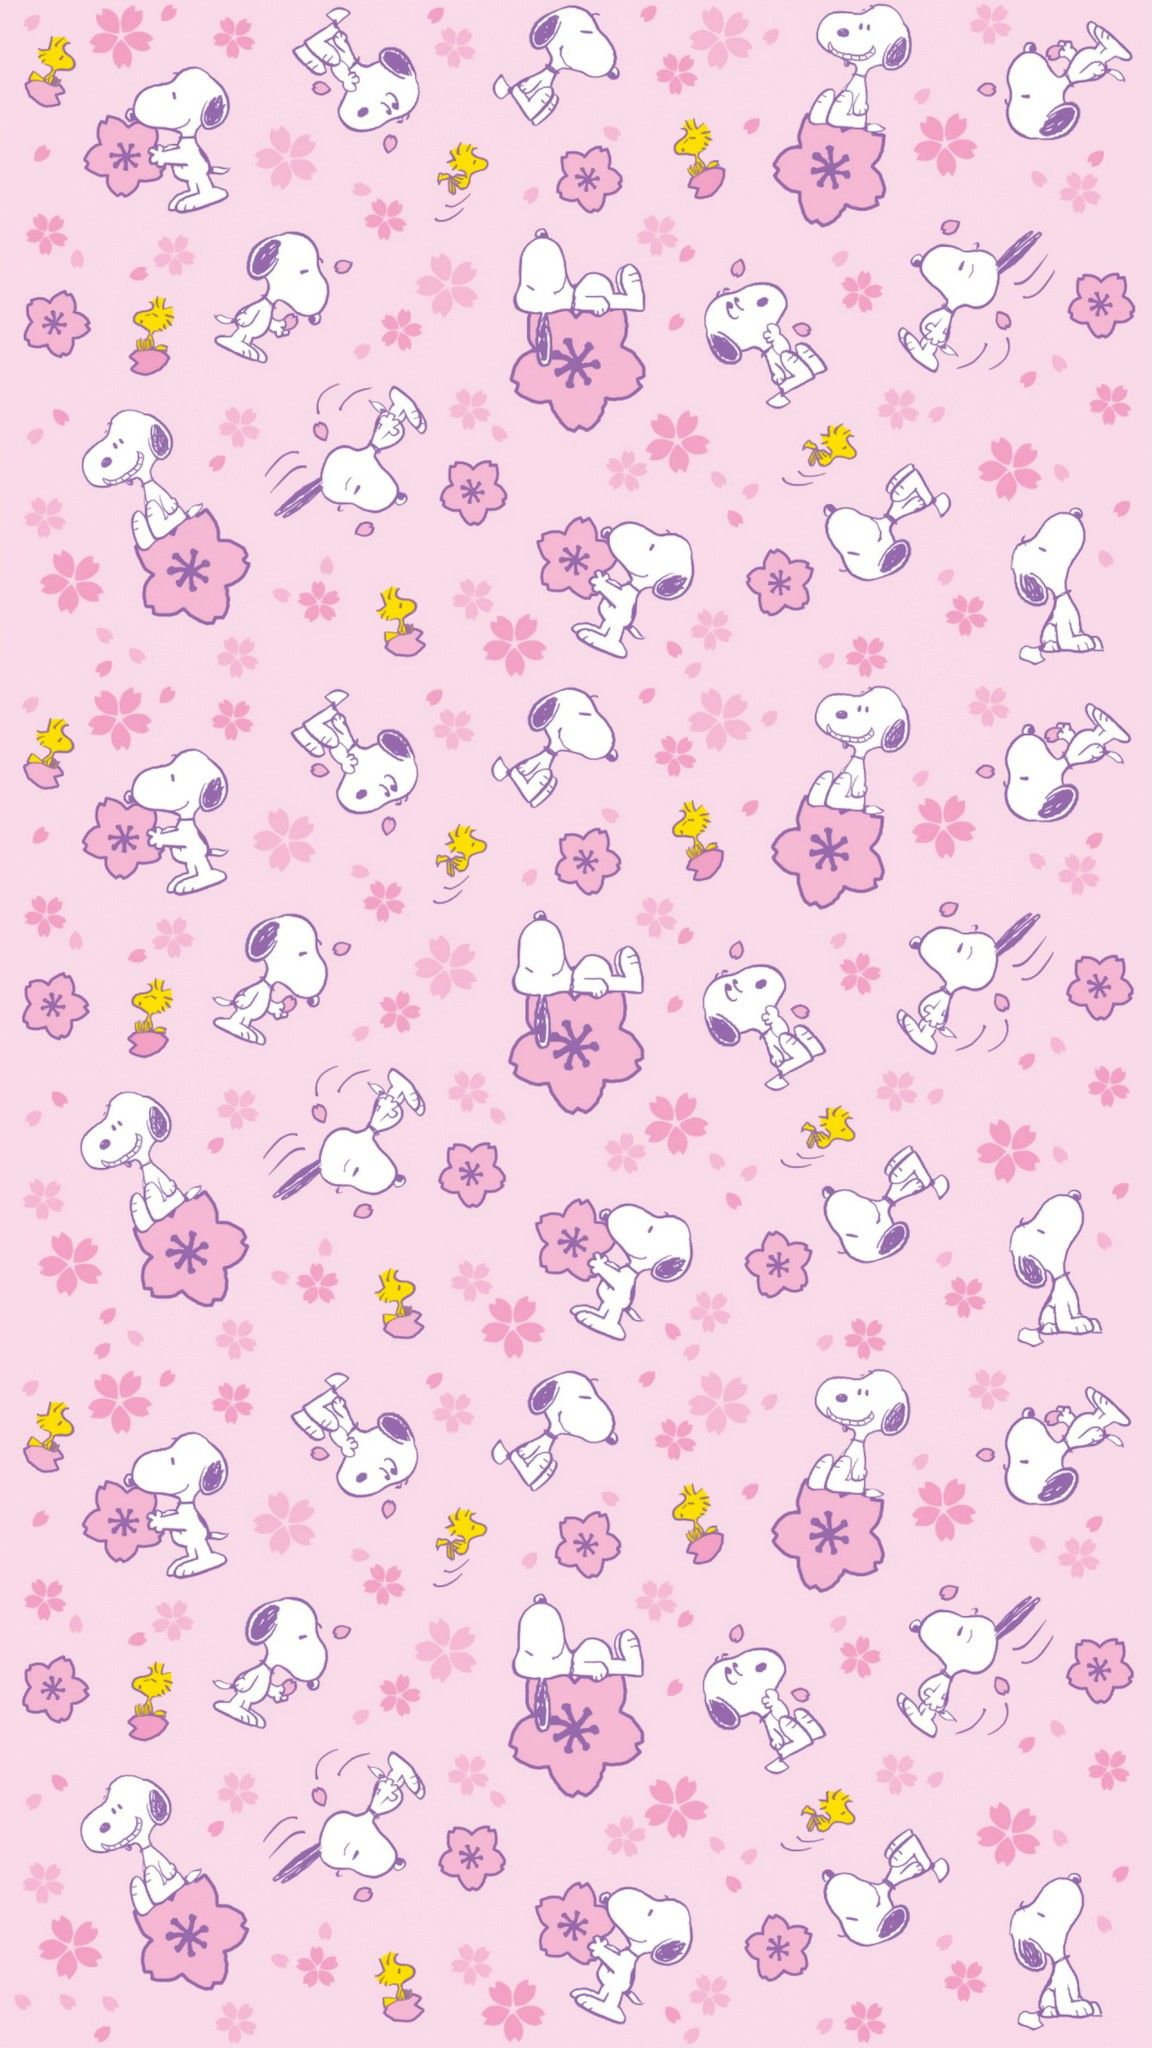 Pin By です あおい On Snoopy In Snoopy Wallpaper Peanuts Wallpaper Snoopy Pictures